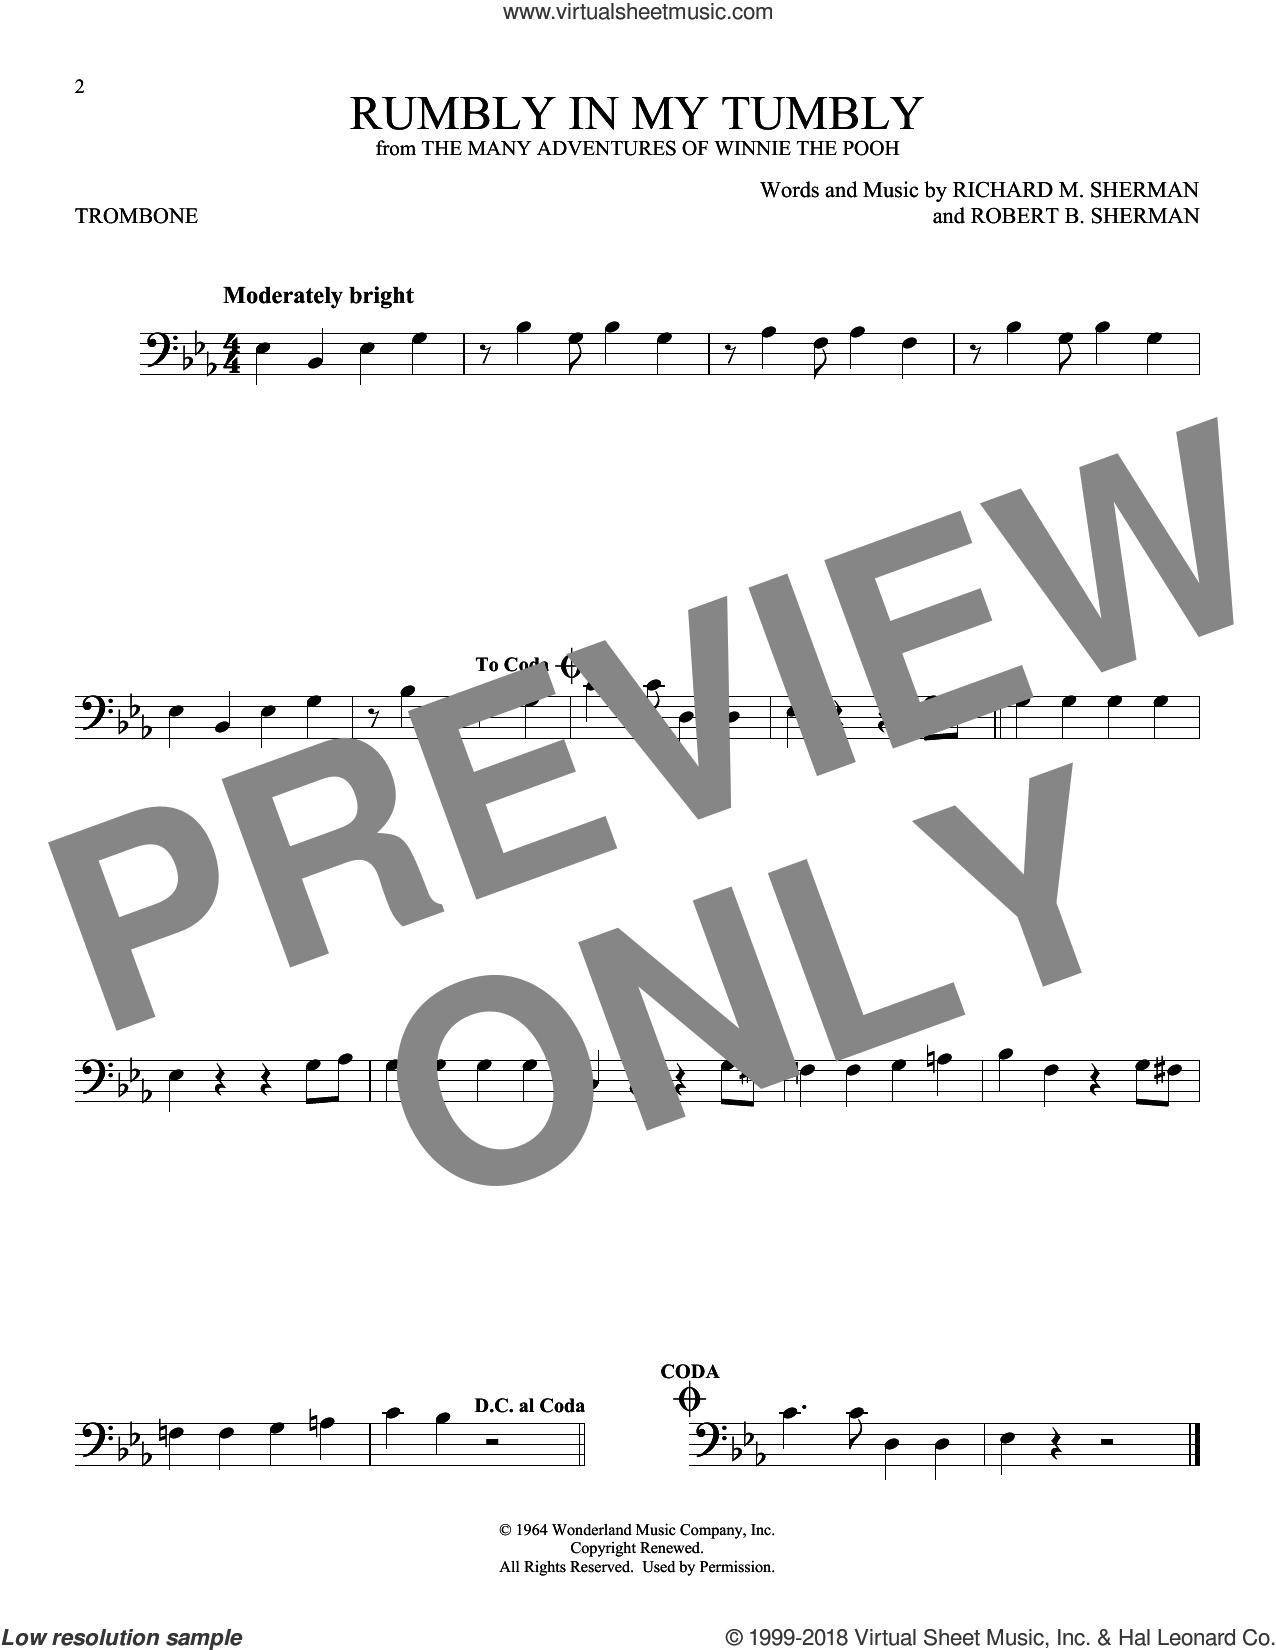 Rumbly In My Tumbly sheet music for trombone solo by Richard M. Sherman and Robert B. Sherman, intermediate skill level